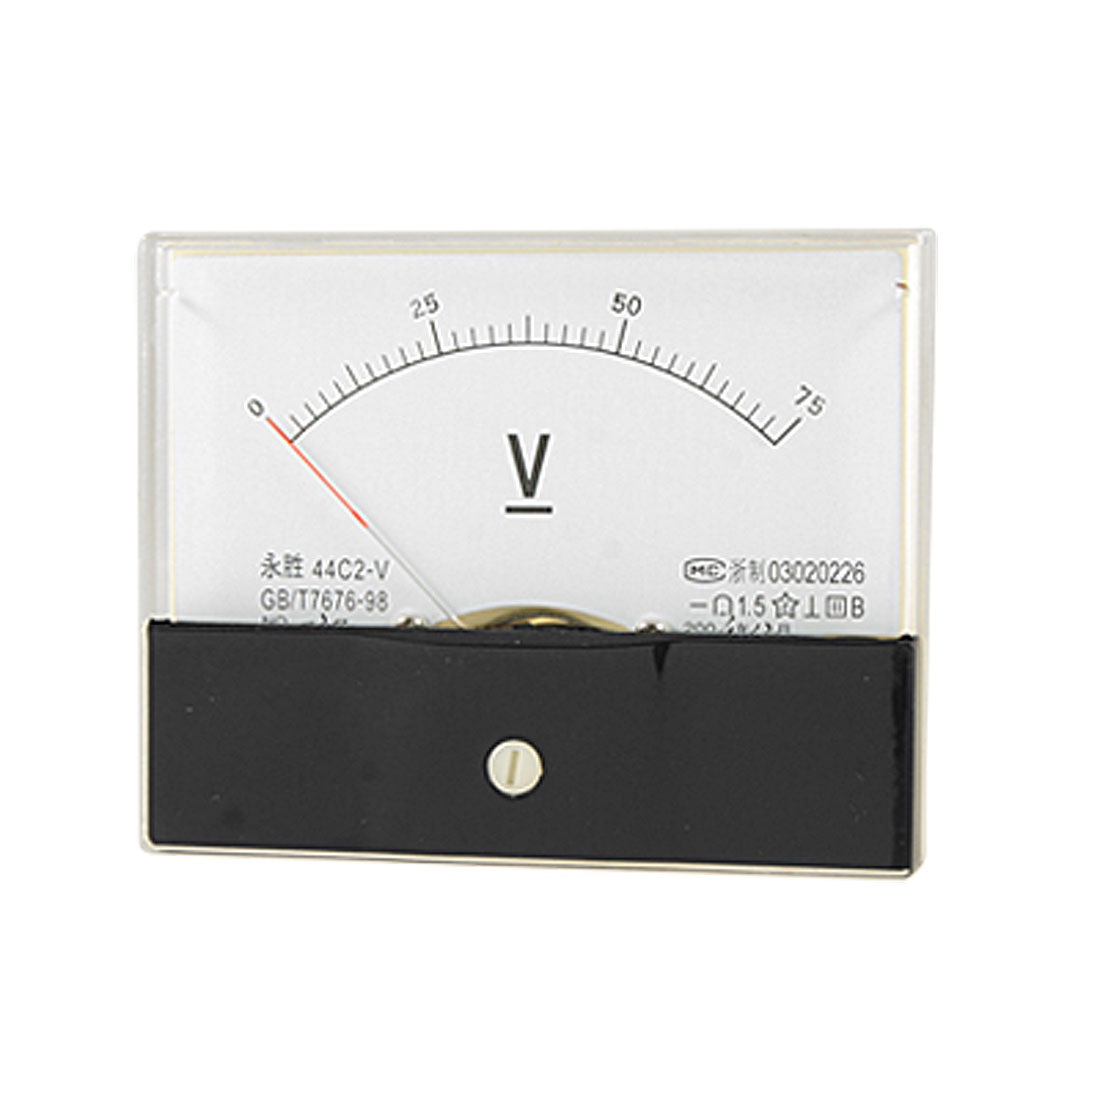 Analog 0-75V DC Voltage Measuring Gauge Panel Meter Voltmeter 44C2